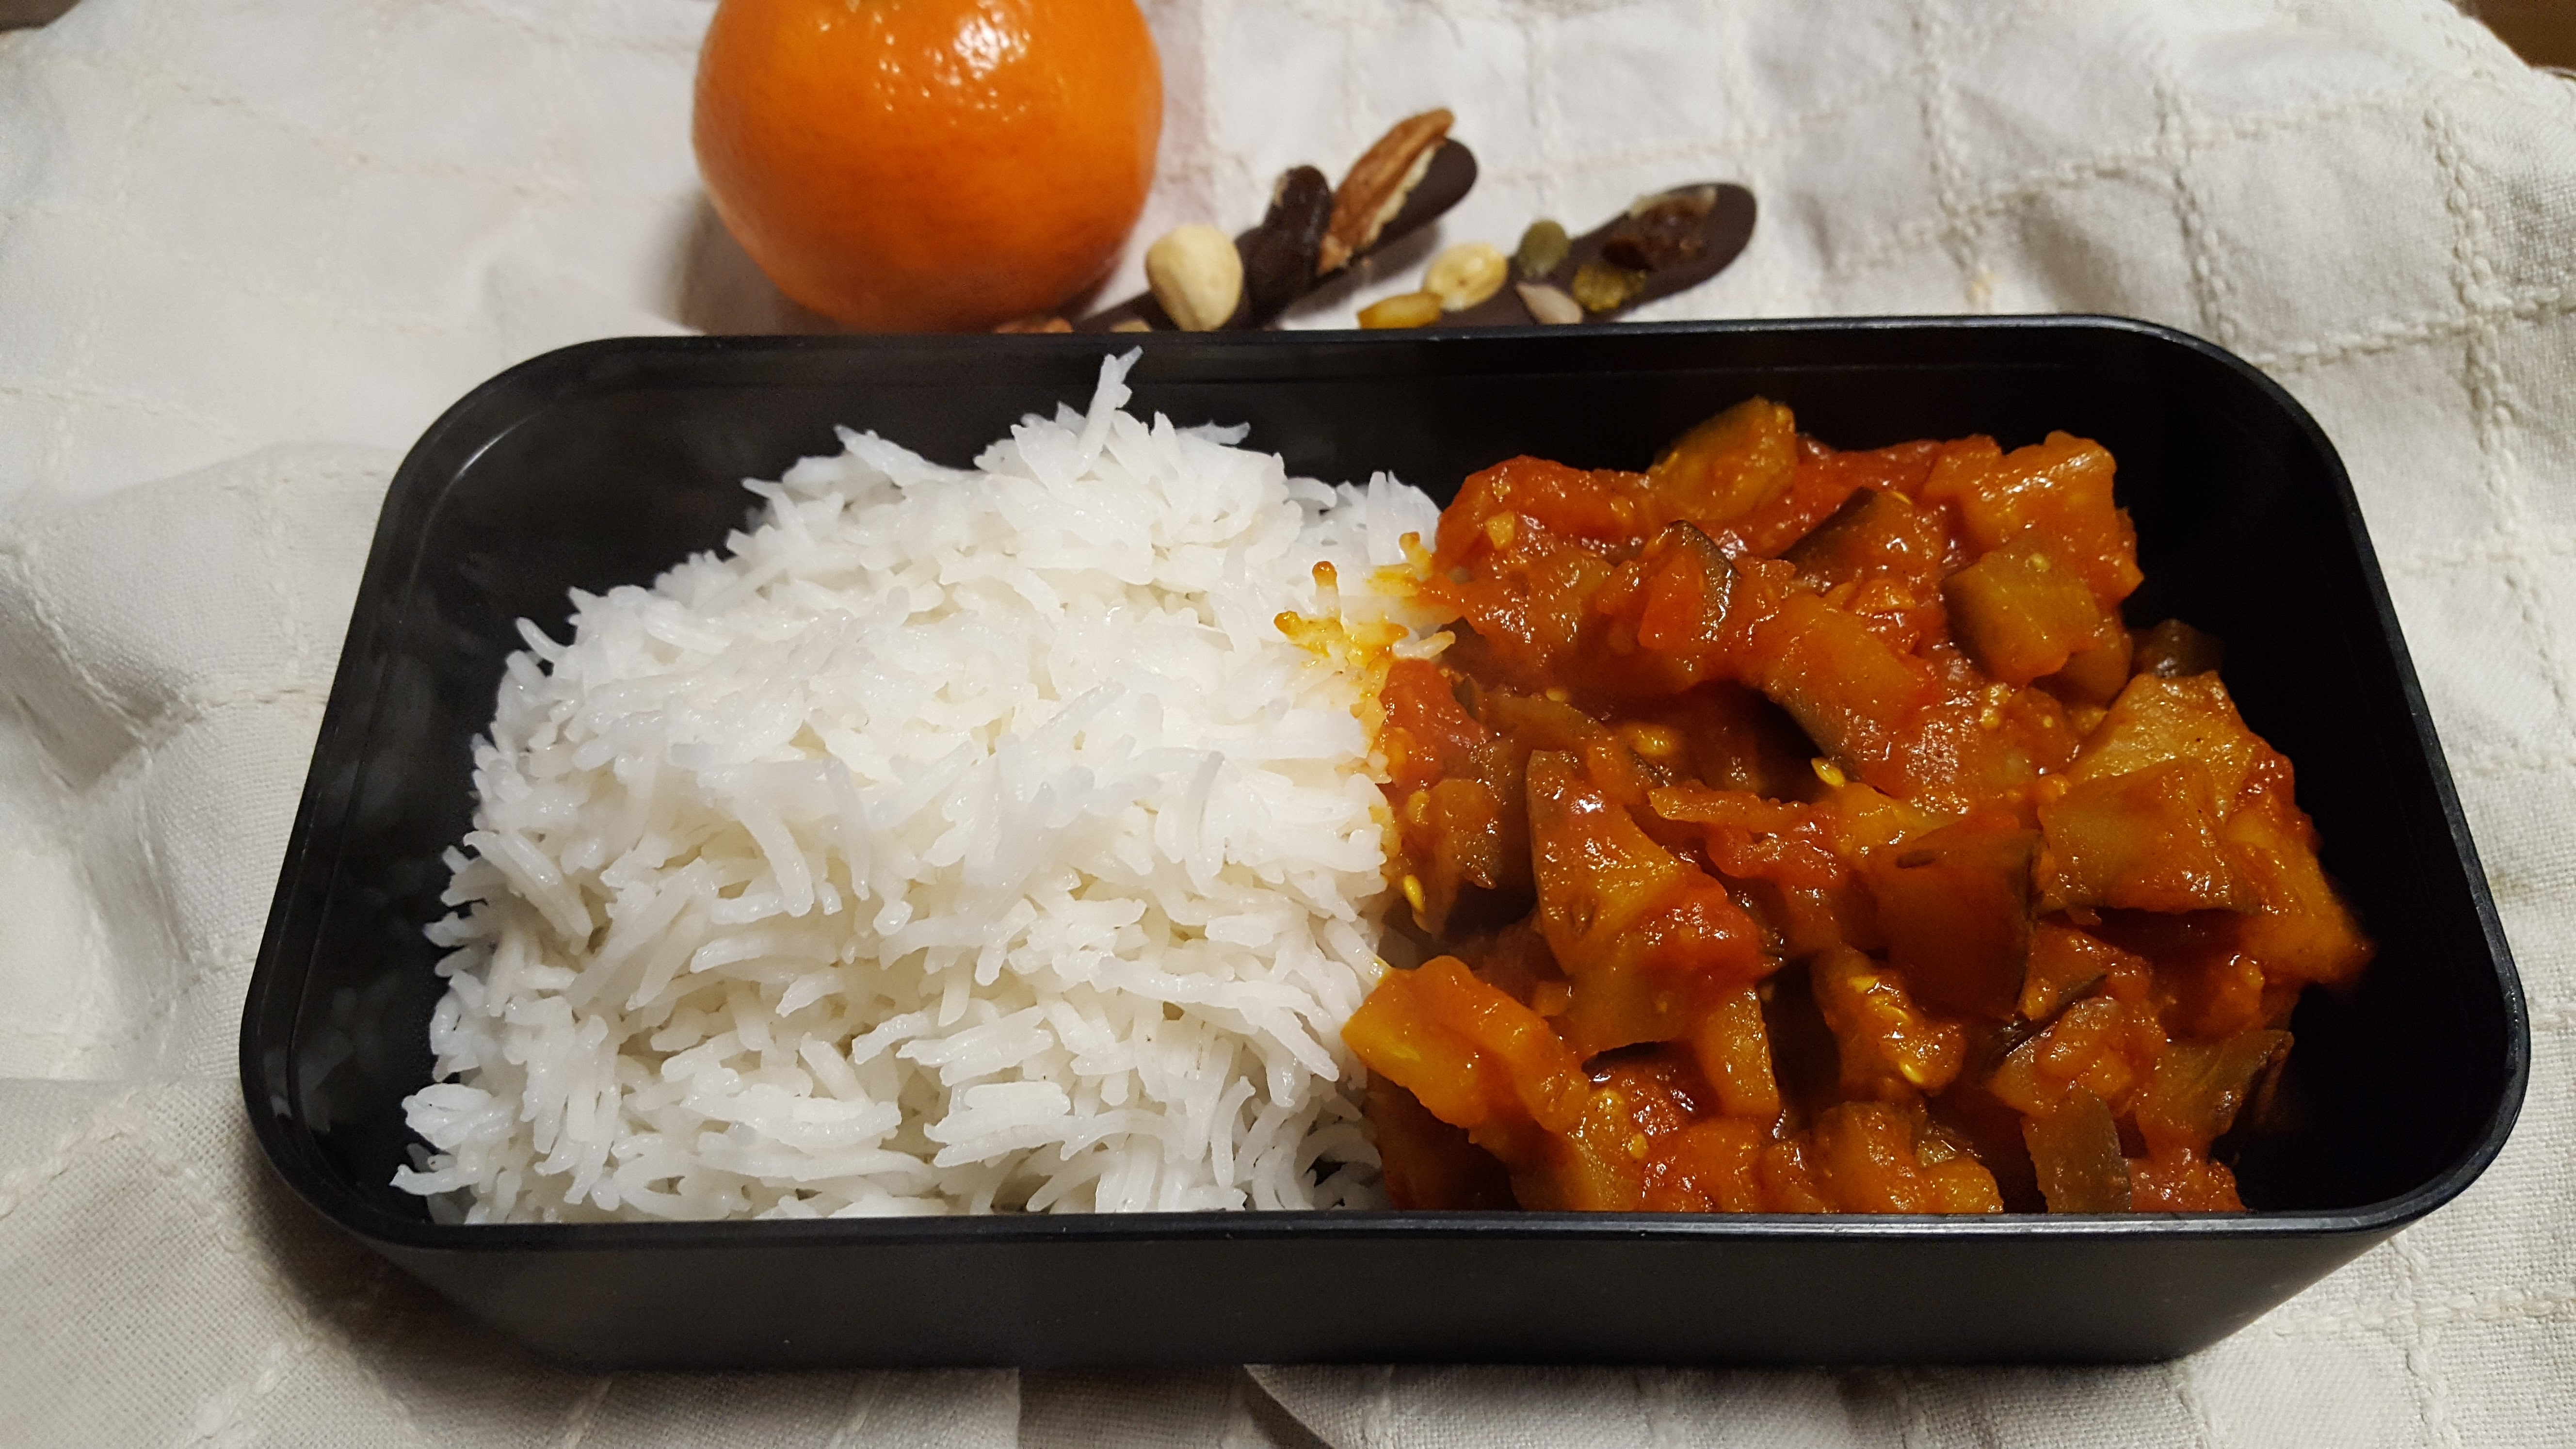 Aubergine & Tomato Stew with basmati rice - Lunch box ideas